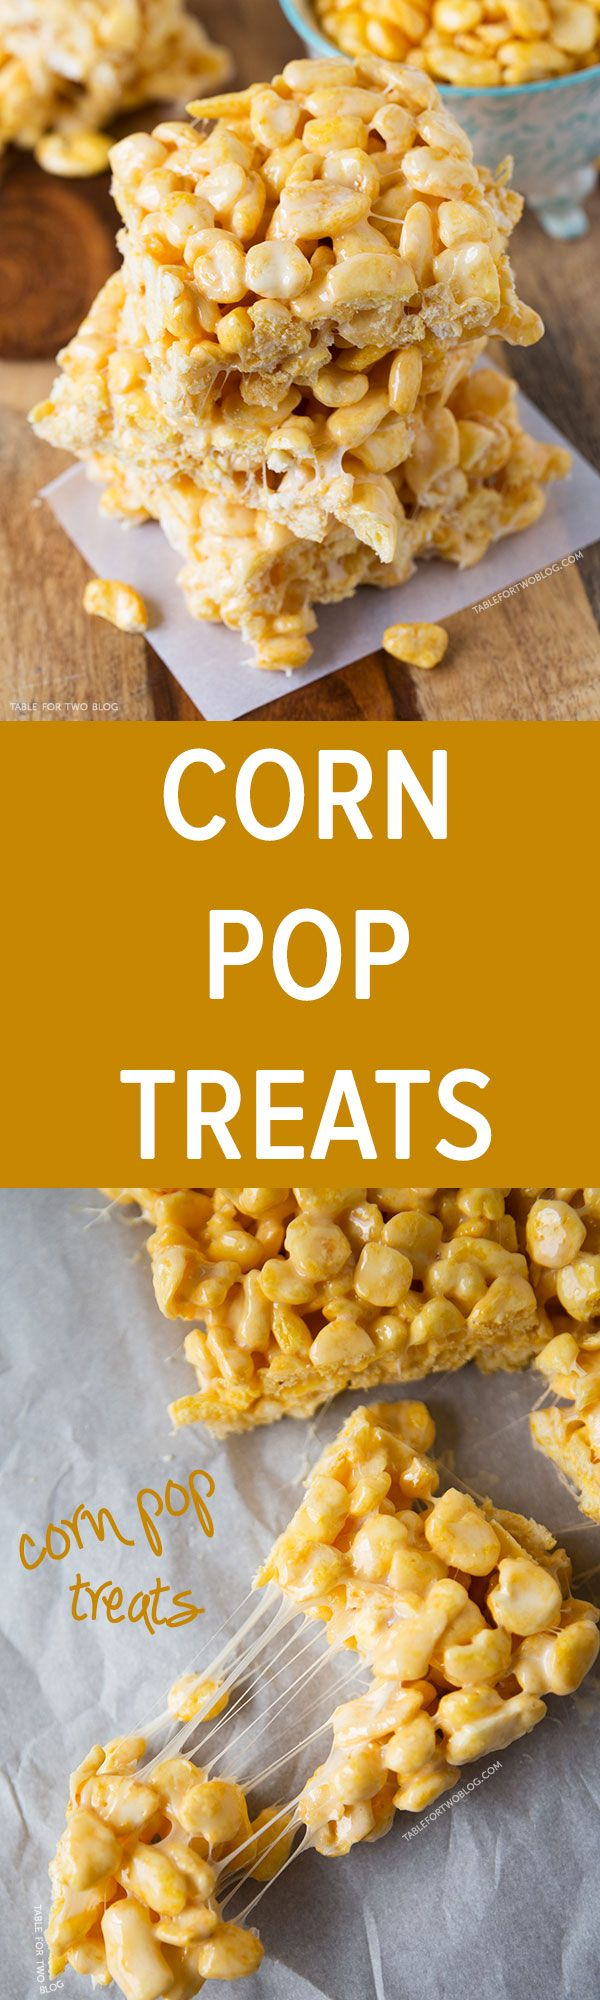 Corn pop treats are a fun spin on the classic rice krispy treat! These corn pop treats will bring you right back to childhood!